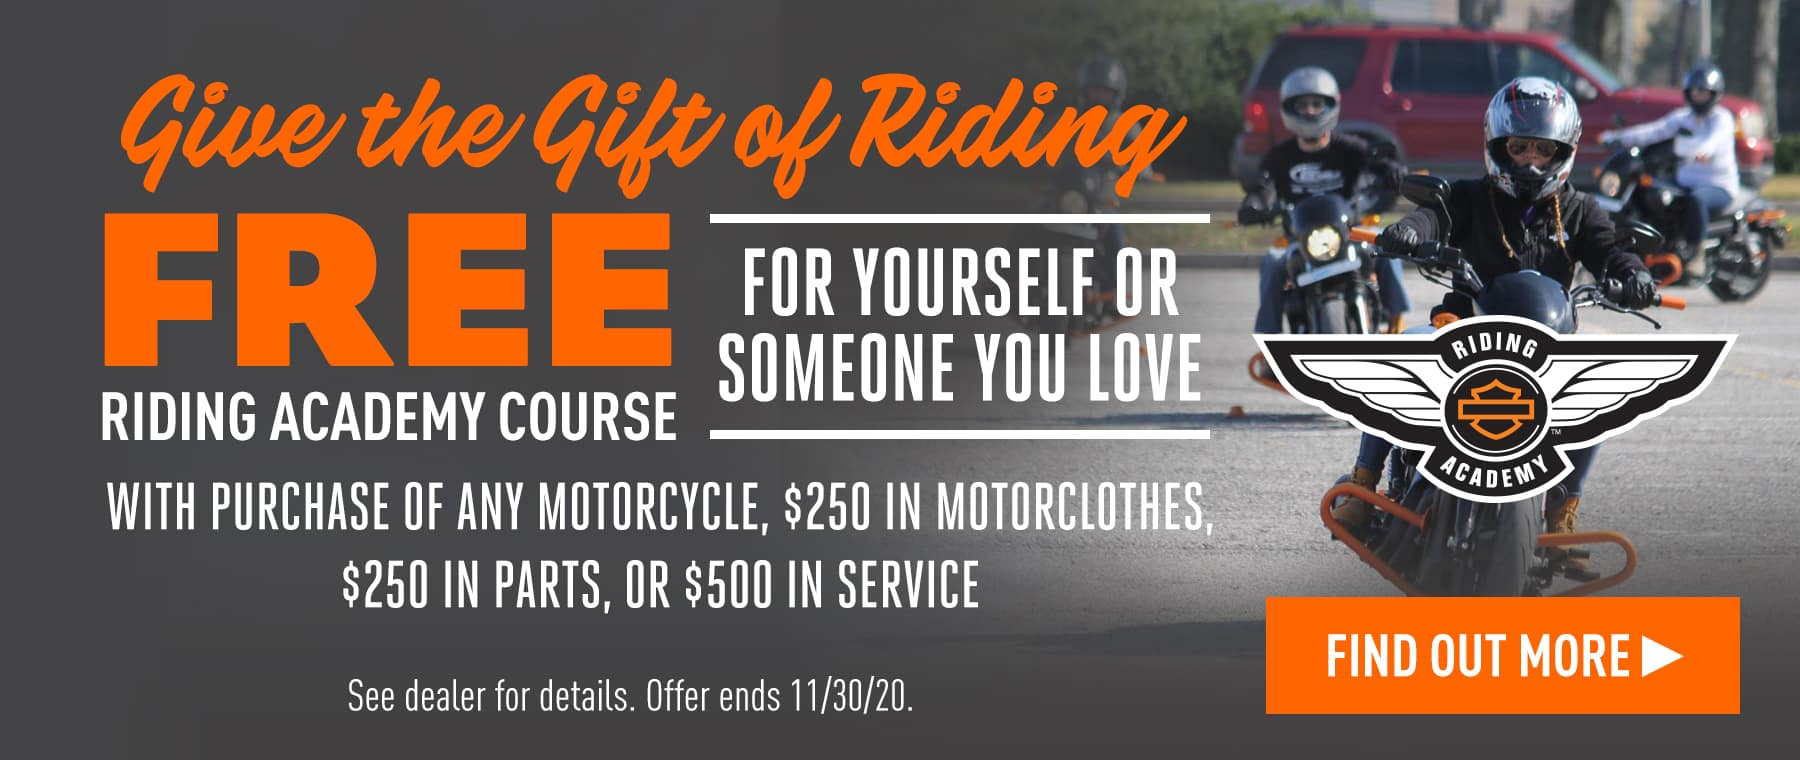 ra-promos_riding-acad-gift